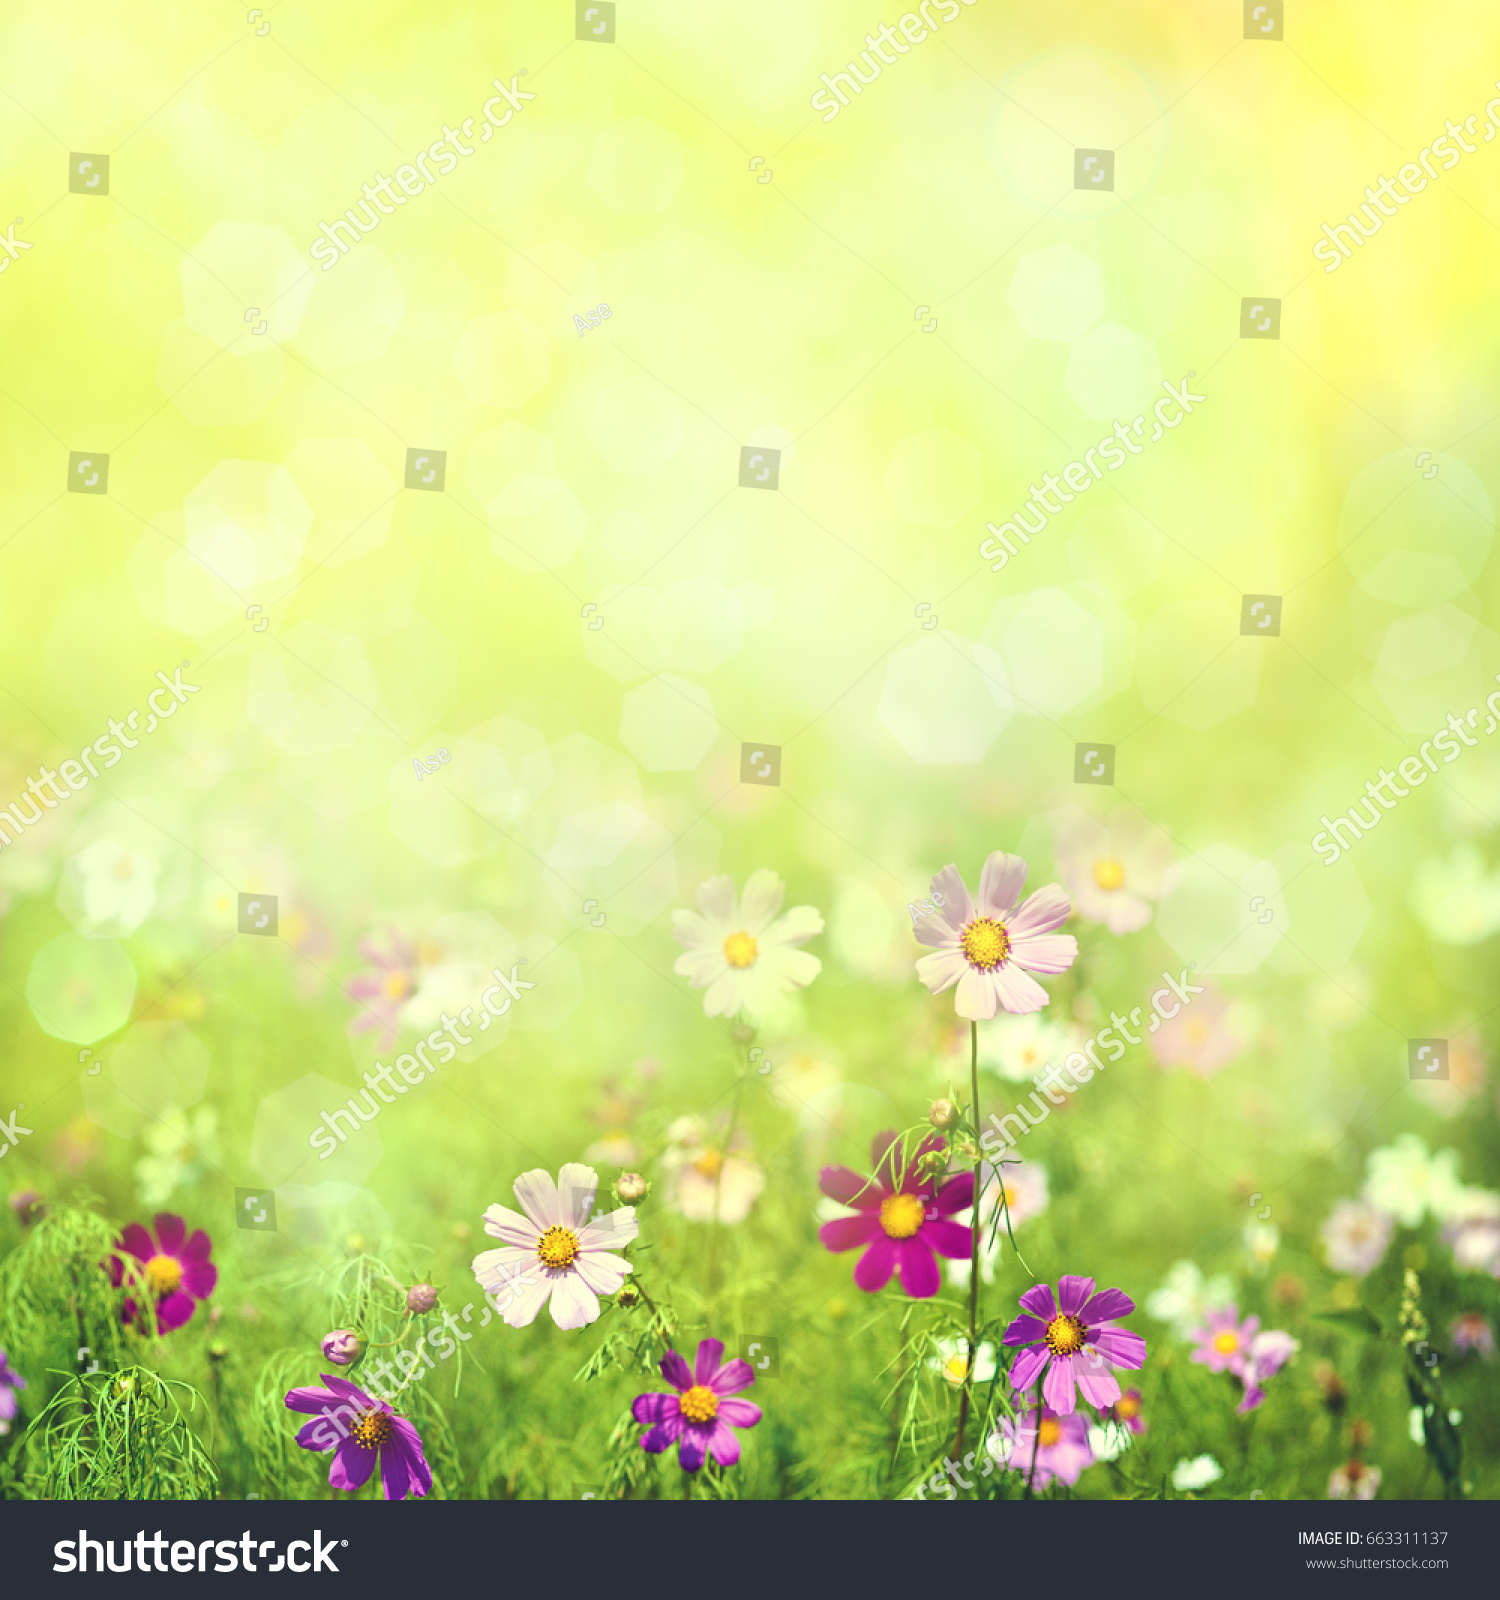 Beauty Spring And Summer Landscape With Fresh Daisy Flowers Ez Canvas